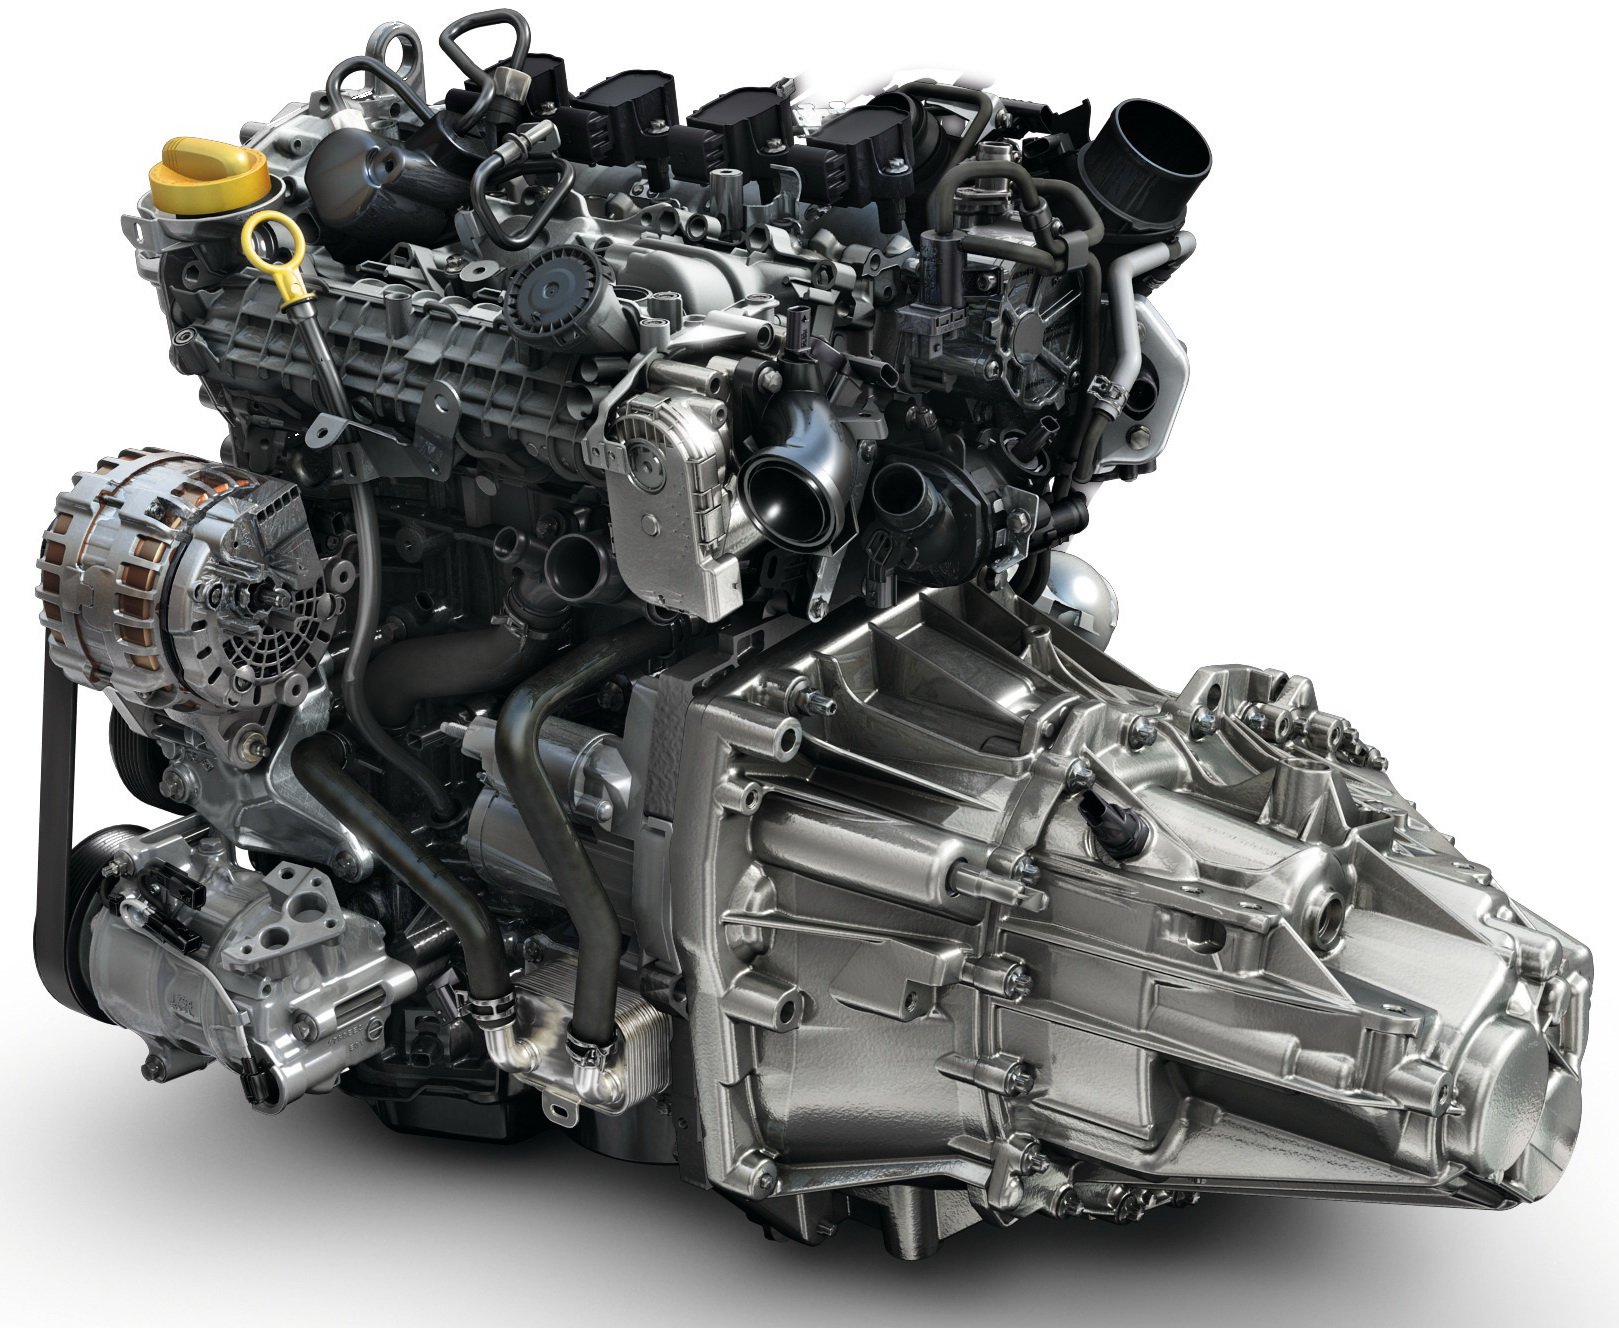 1.3 engine Renault/Mercedes-Benz